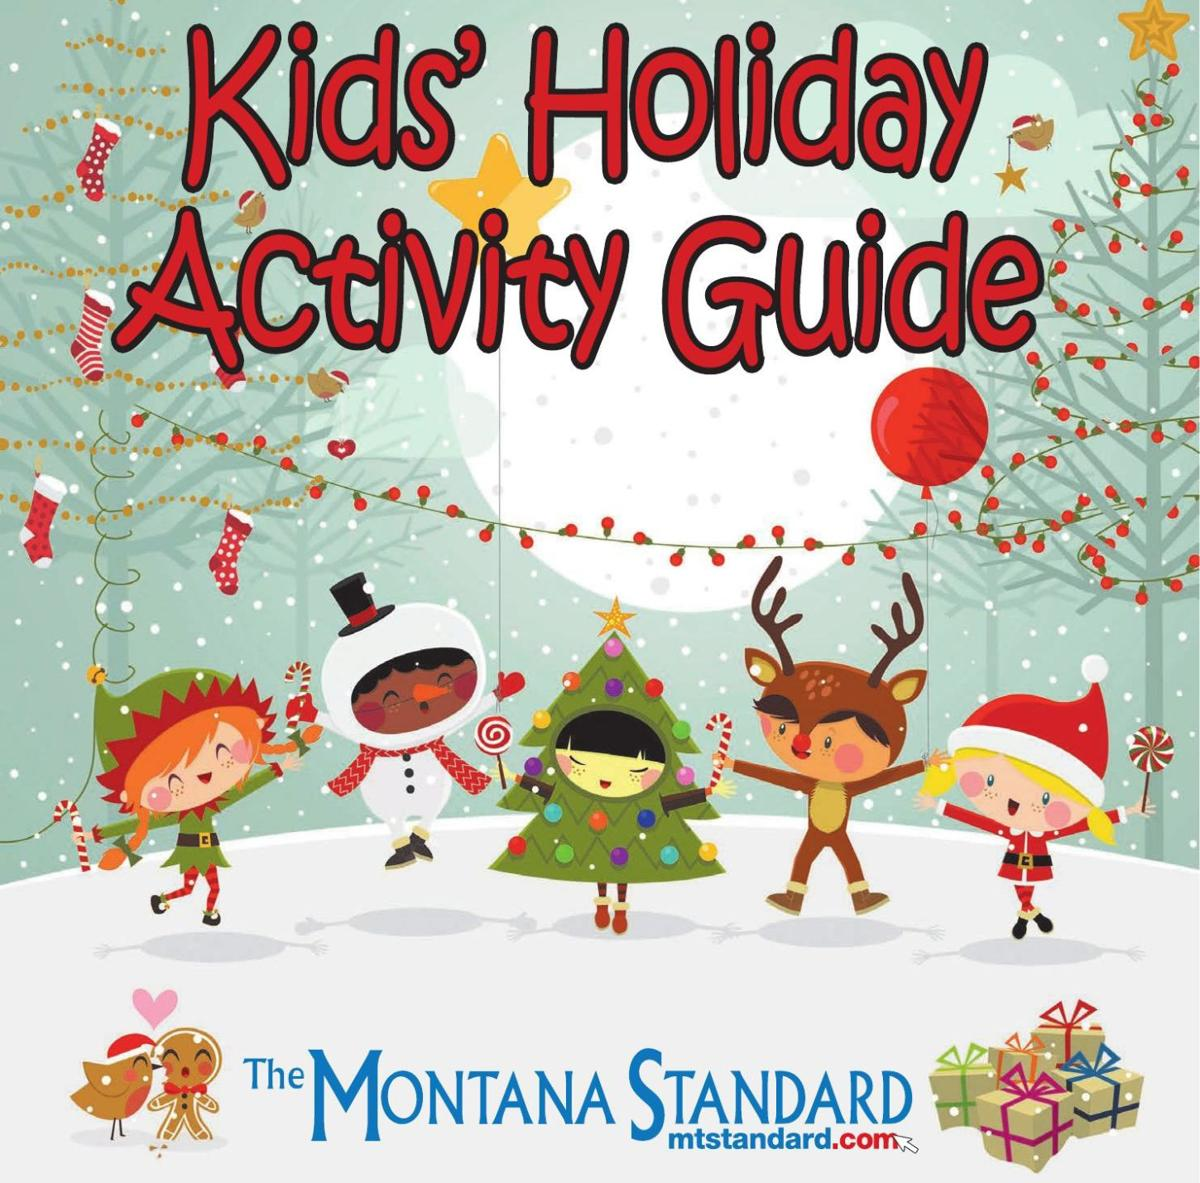 Kids' Holiday Activity Guide